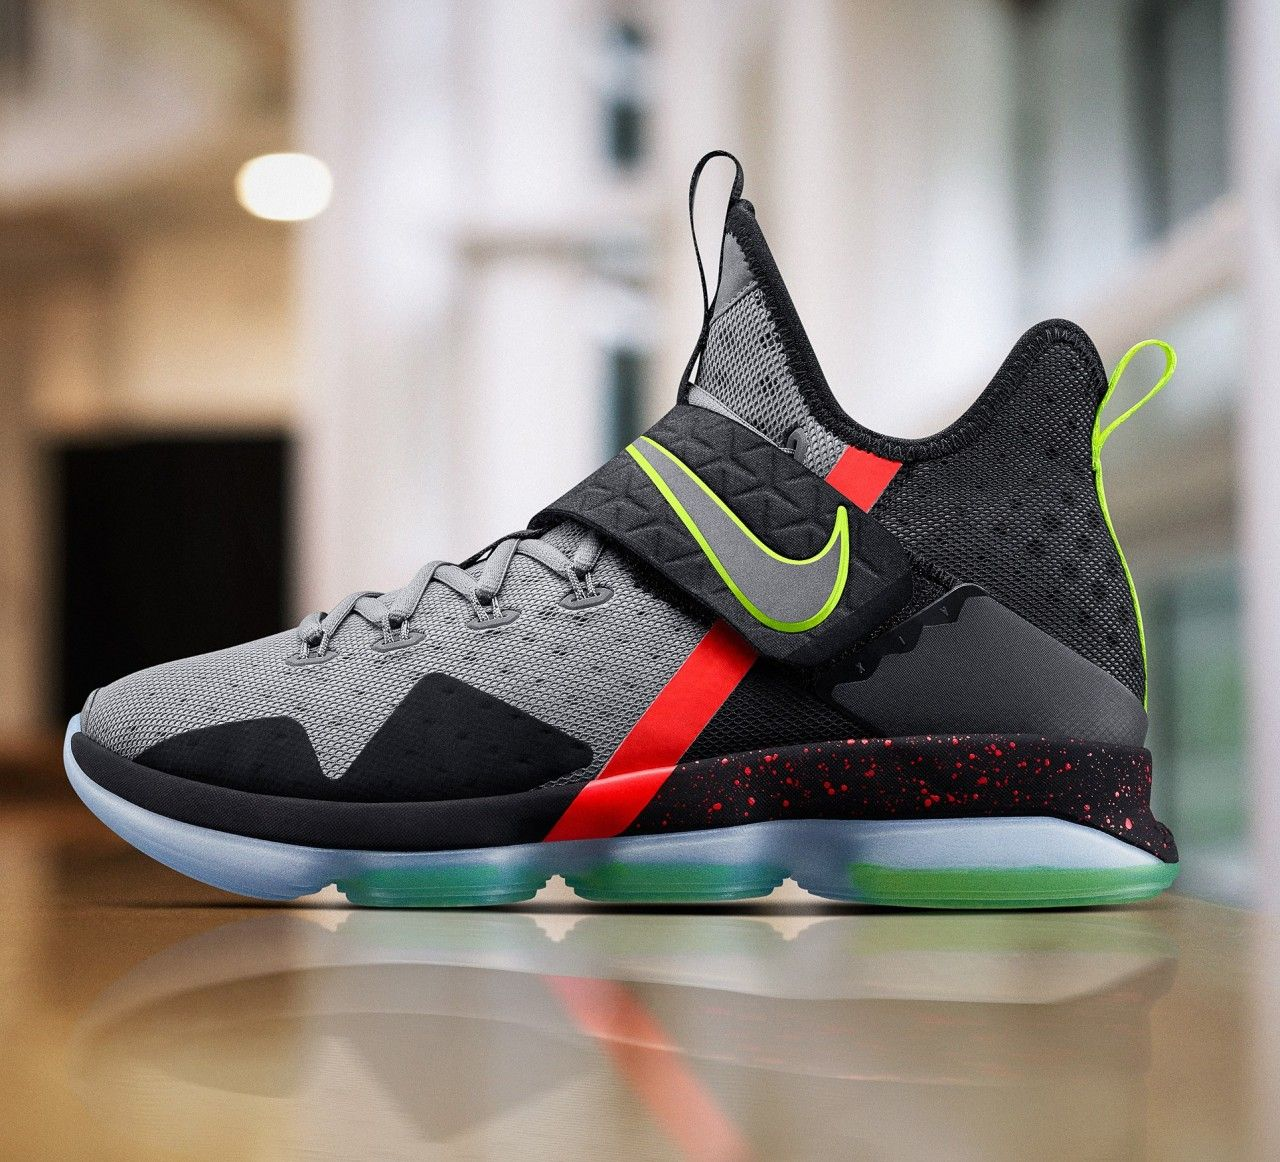 nike shoes lebron james philippines shoes 1980 927151